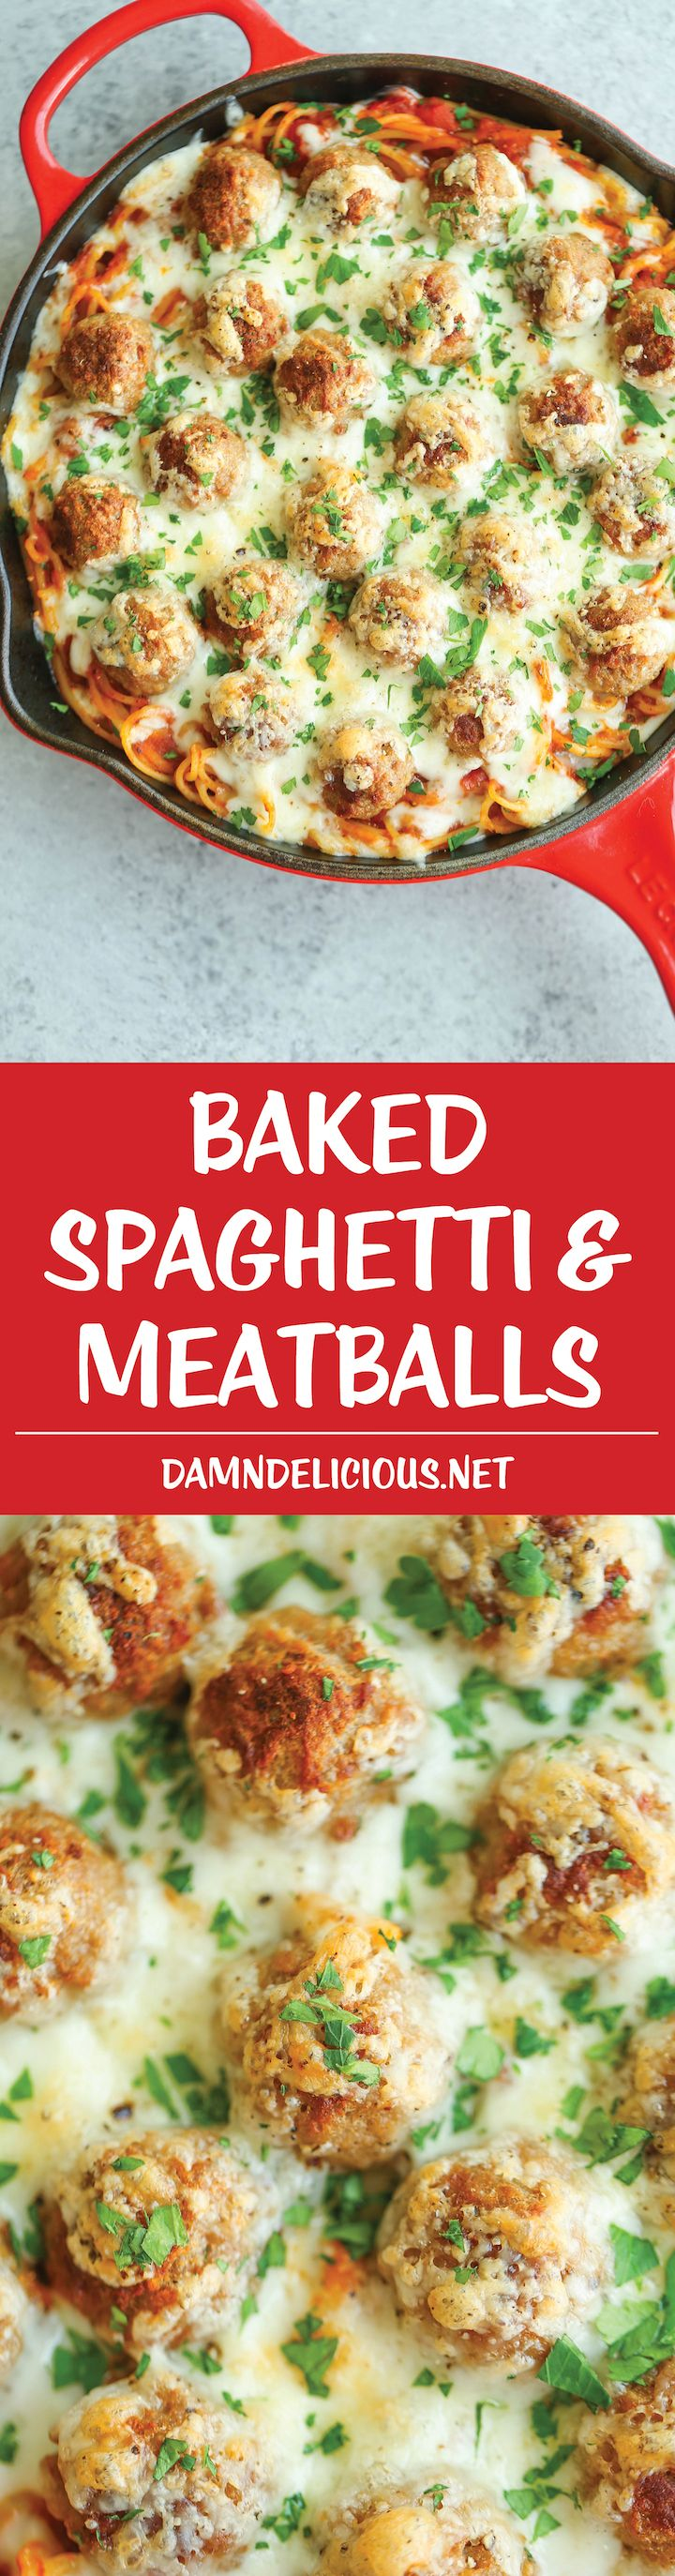 Baked Spaghetti and Meatballs - Traditional spaghetti and meatballs is ...